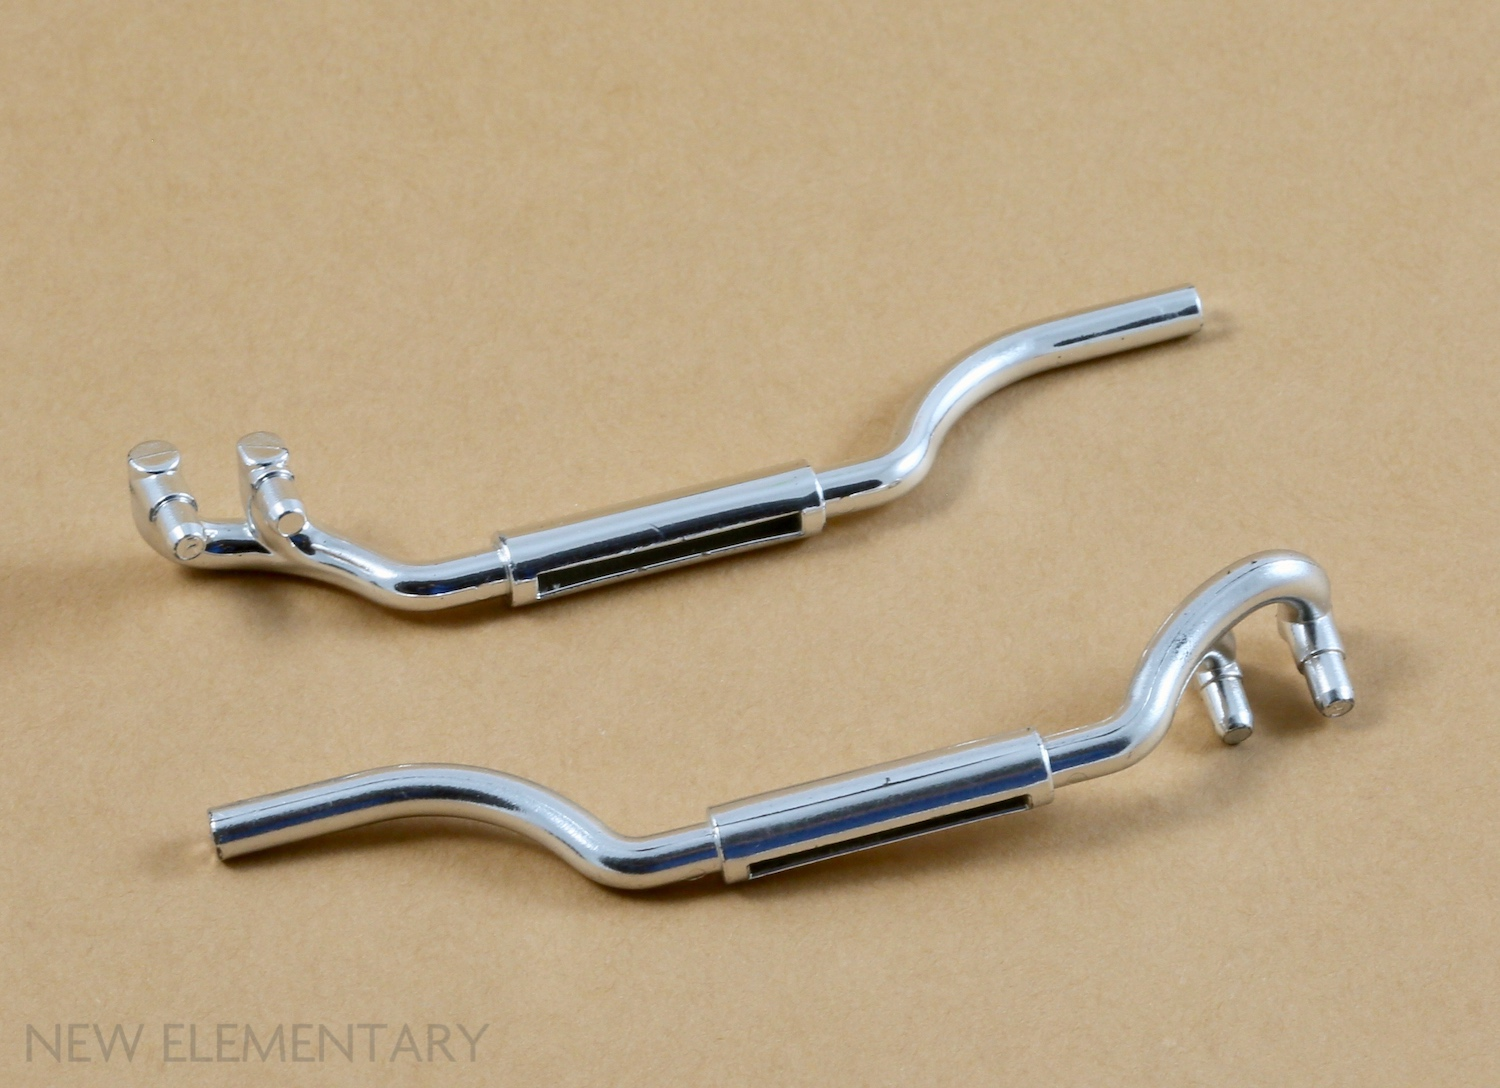 1x Lego Exhaust Chrome Silver Left Exhaust Pipe 11L Car Exhaust Pipe 4466